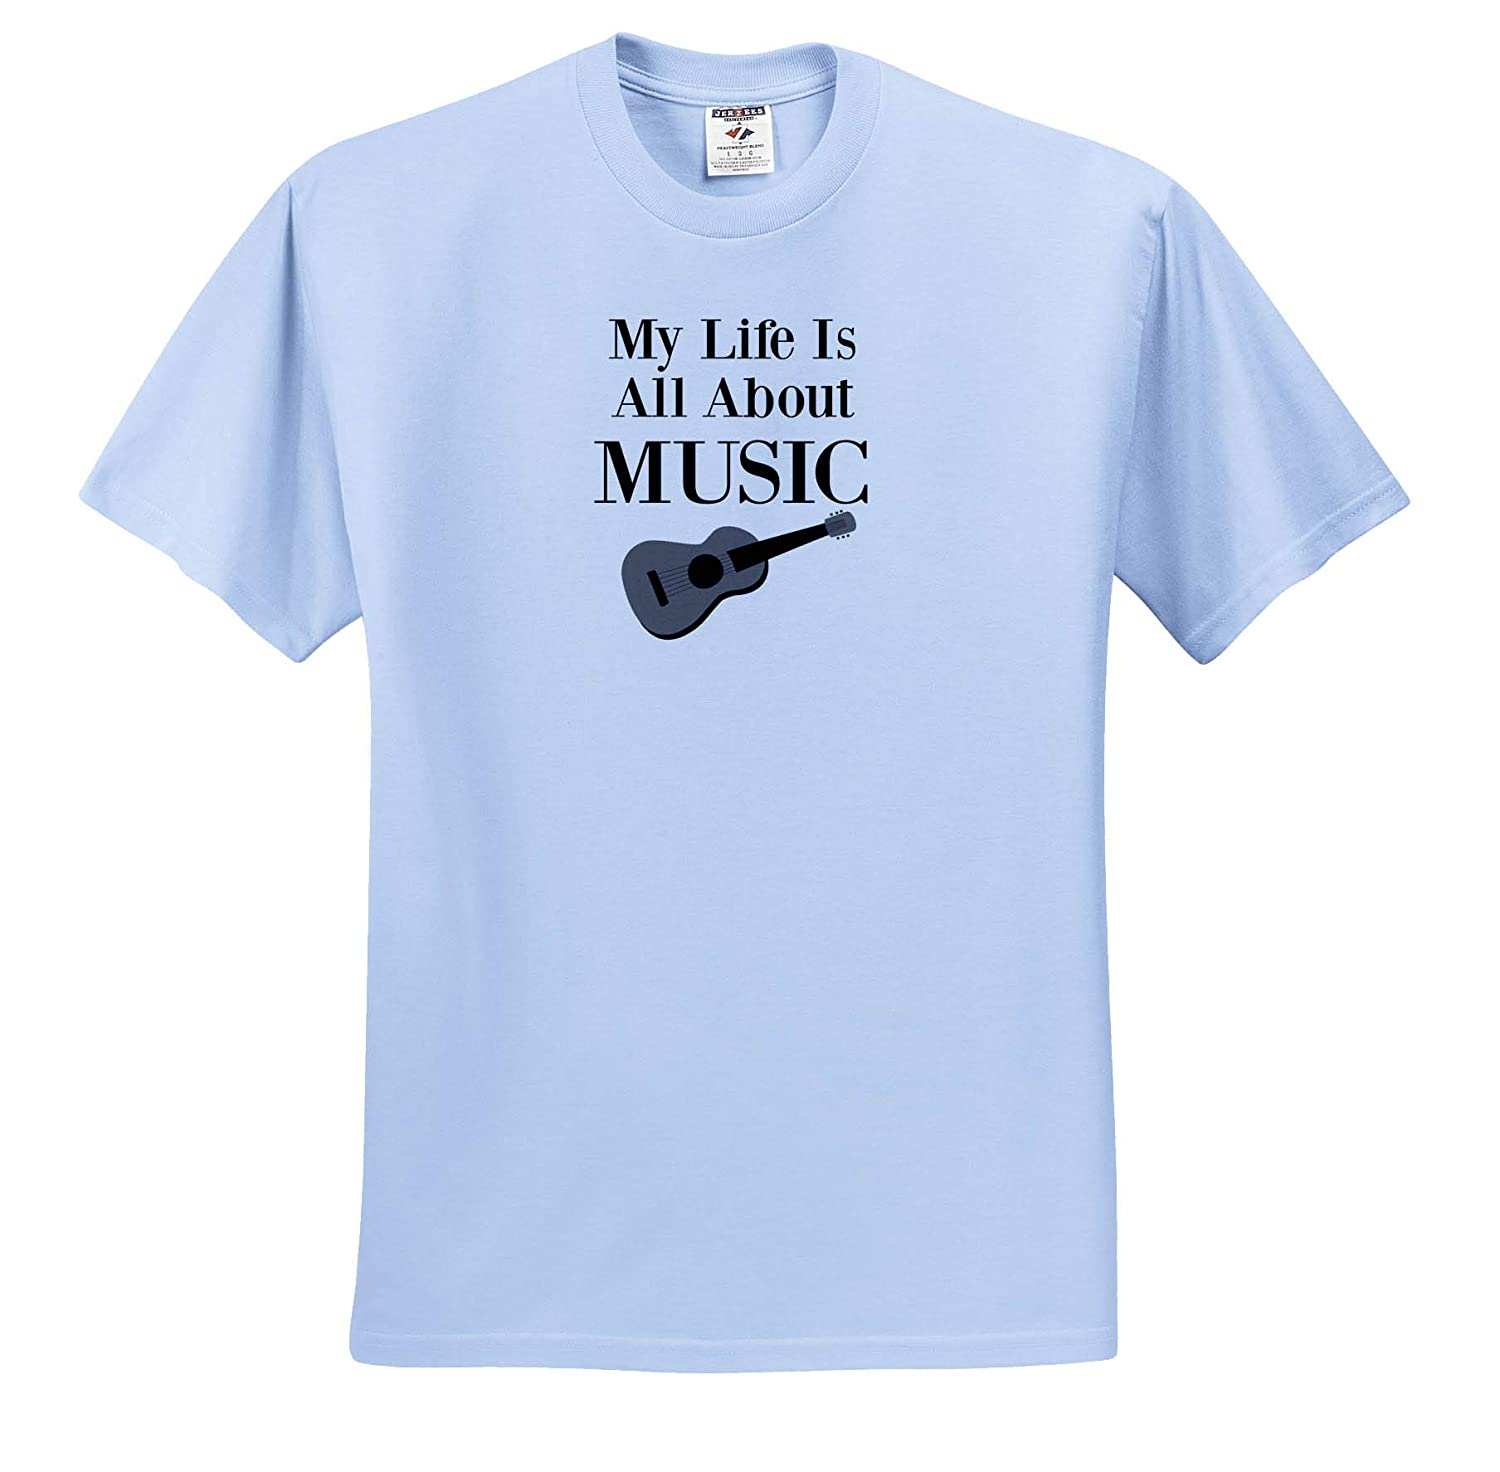 ts/_320201 3dRose Carrie Quote Image Adult T-Shirt XL Image of My Life is All About Music